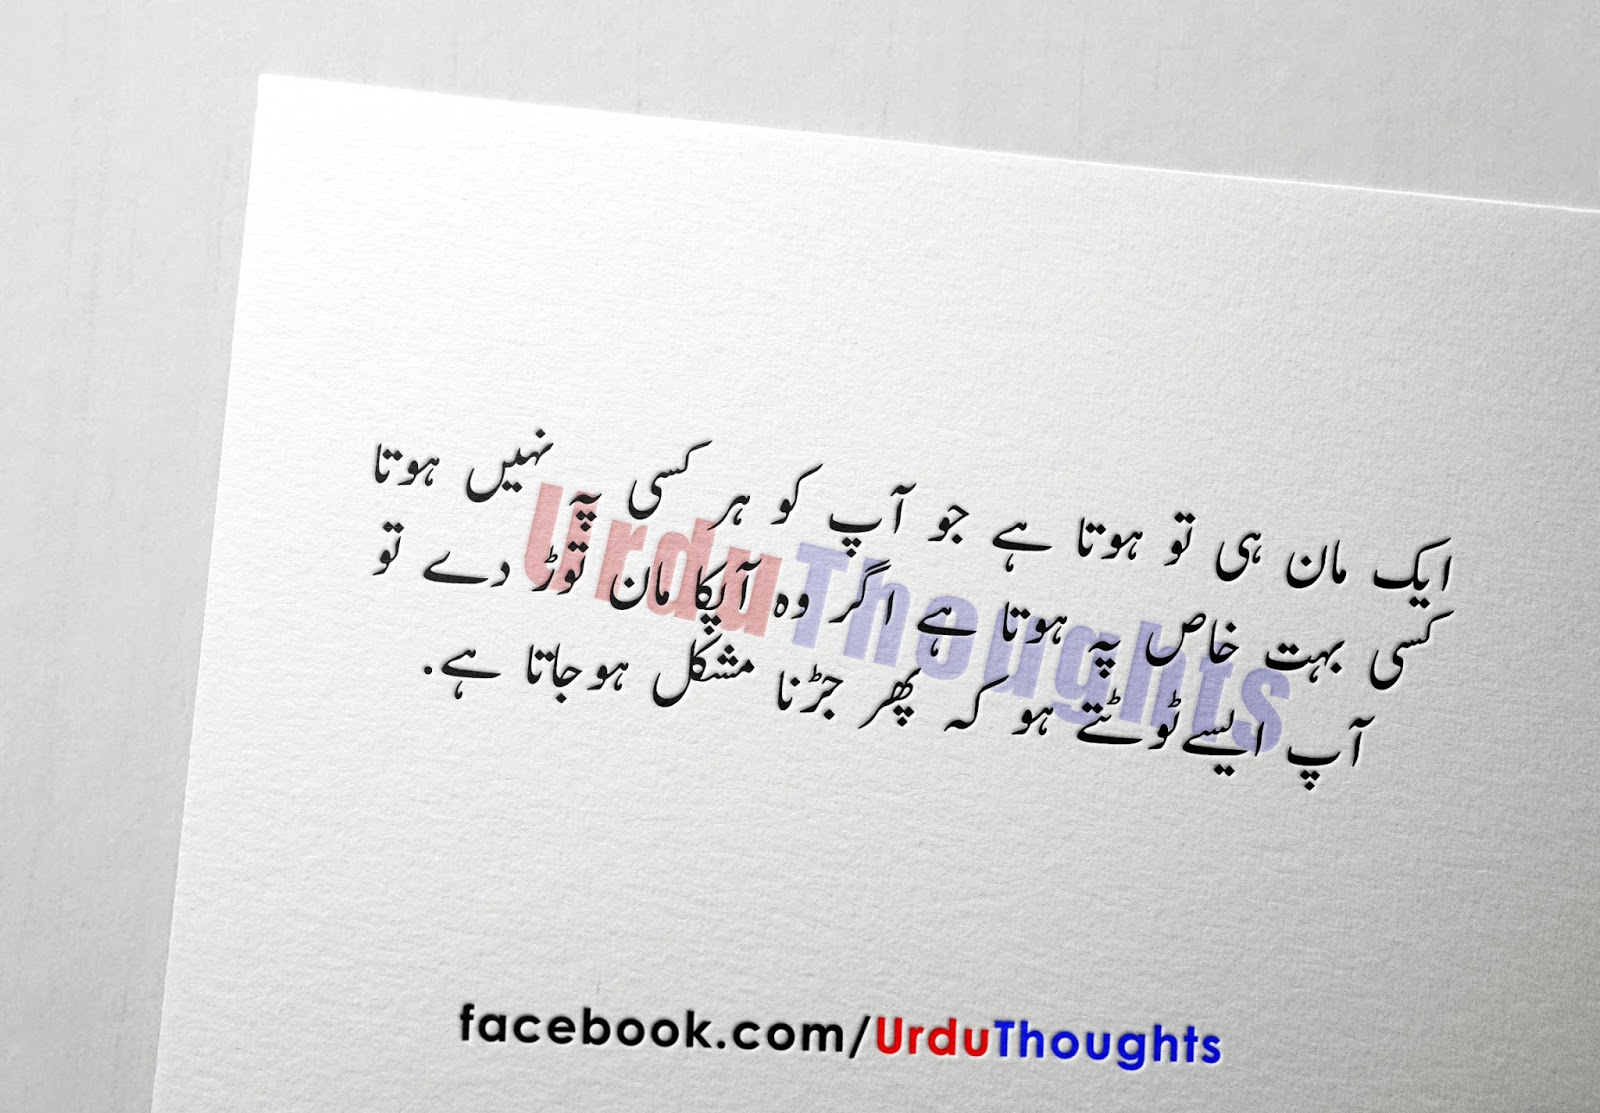 Quotes In Urdu Captivating Best Urdu Quotes With Images  Famous Urdu Quotes  Urdu Thoughts